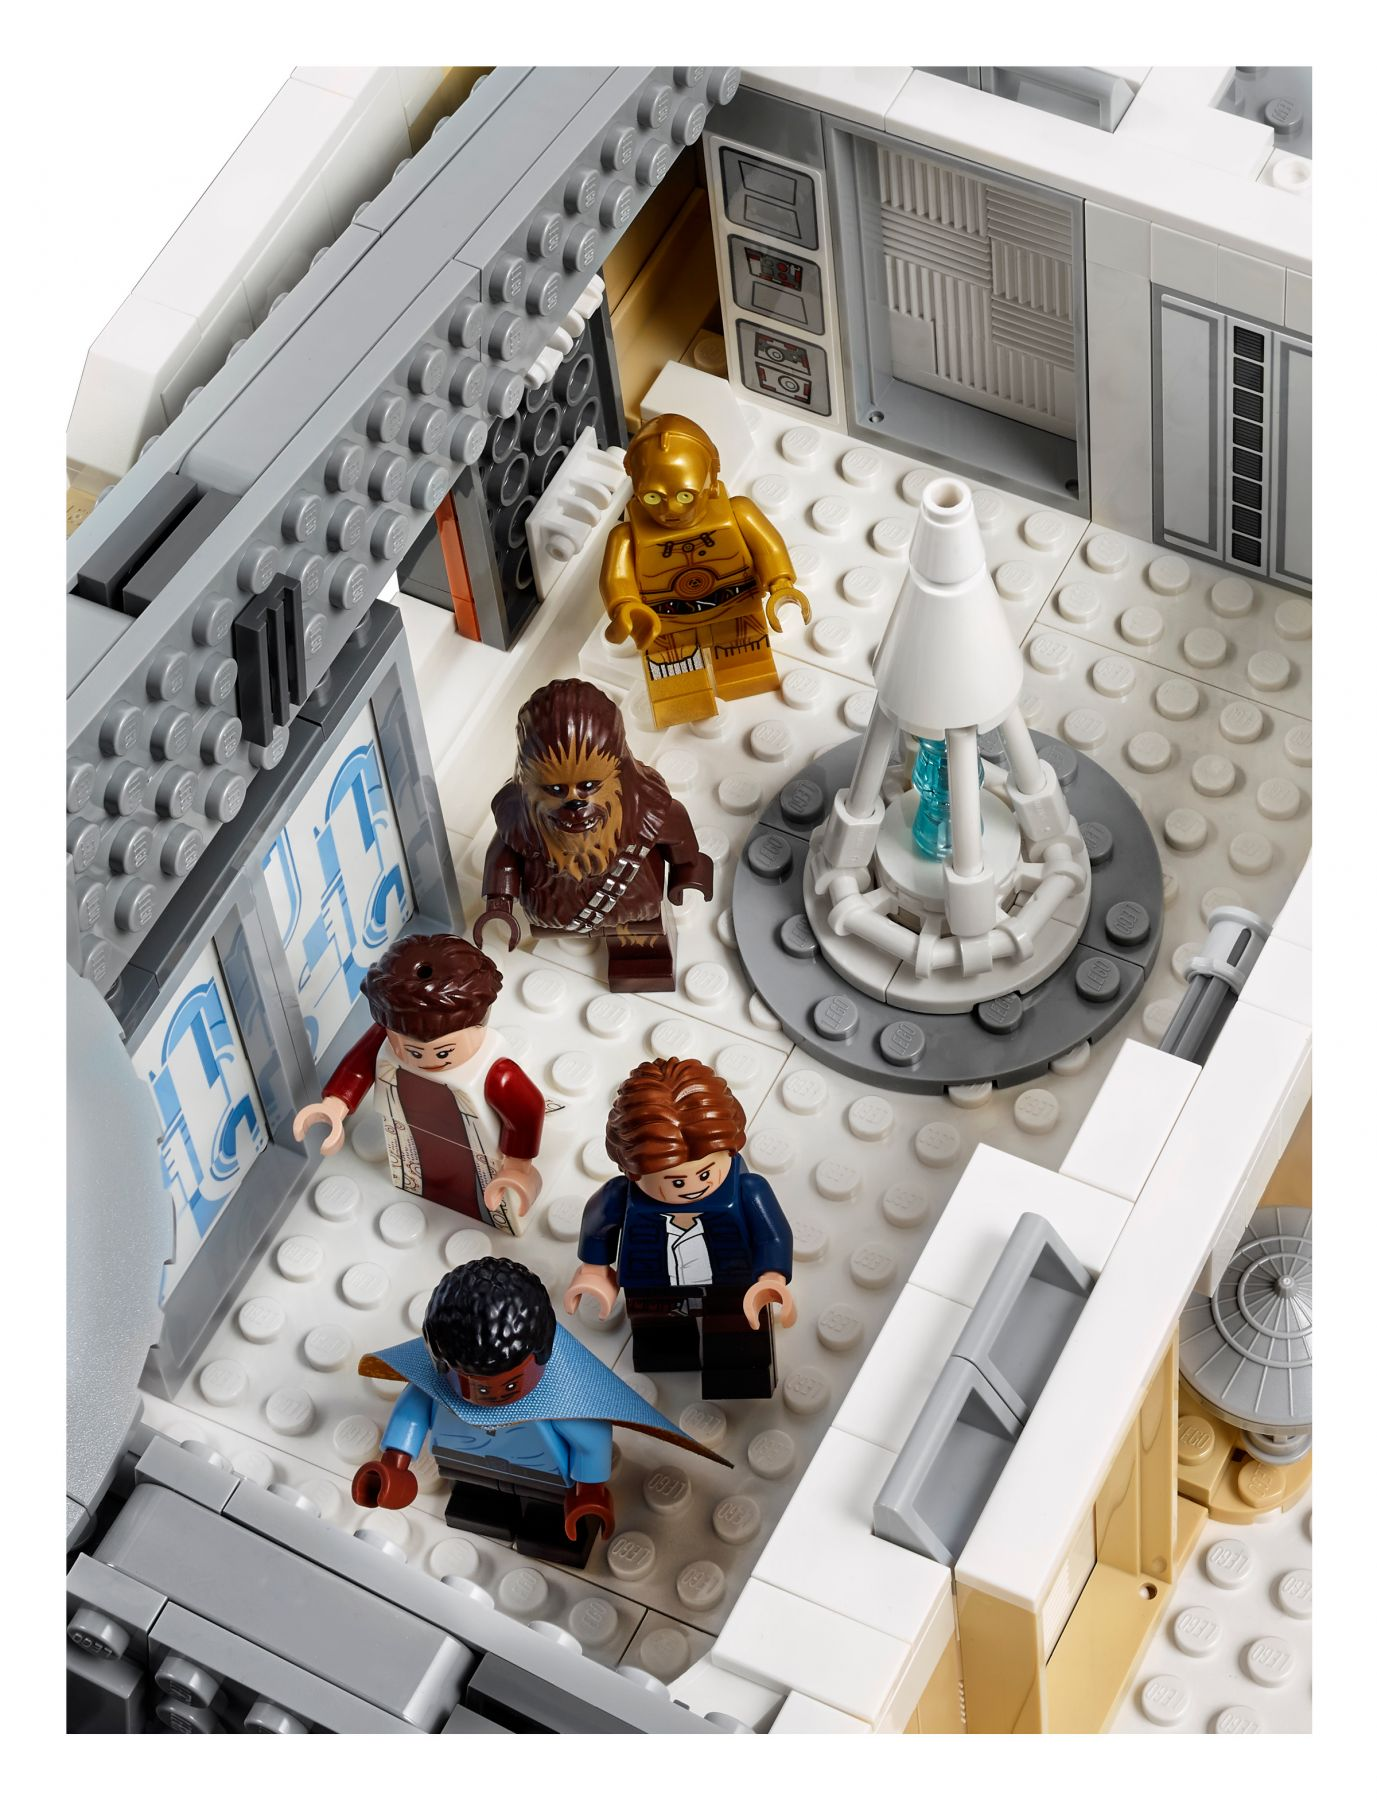 LEGO Star Wars 75222 Verrat in Cloud City™ LEGO_75222_alt4.jpg